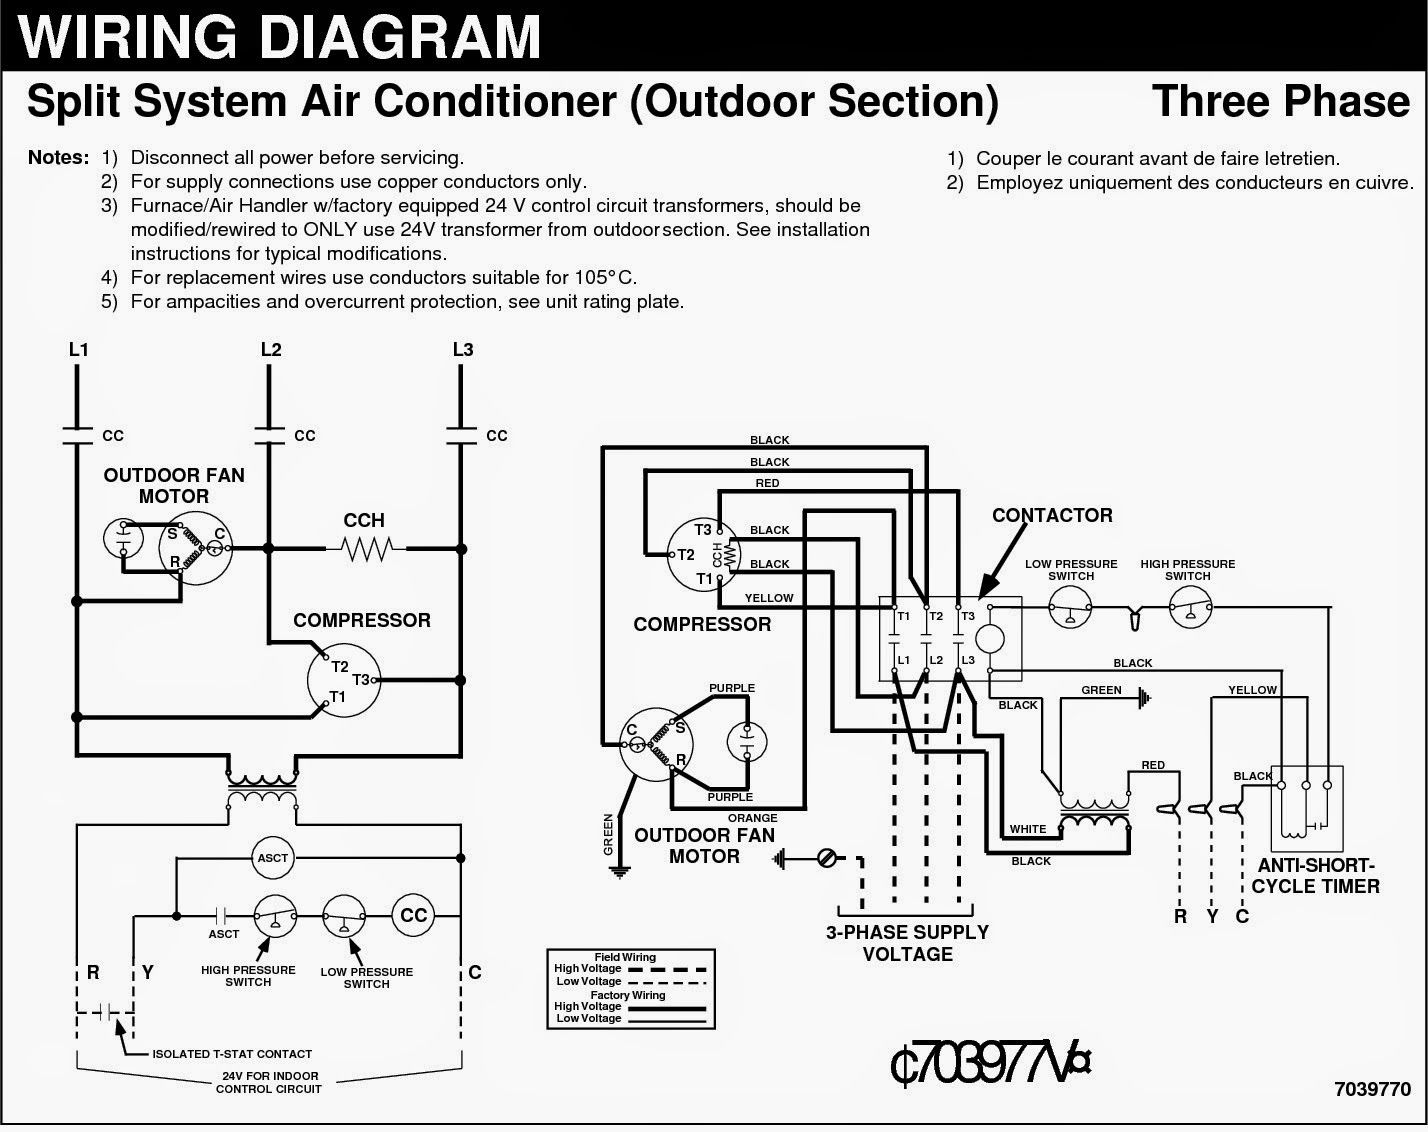 3 Phase Wiring Diagram For House With Images Electrical